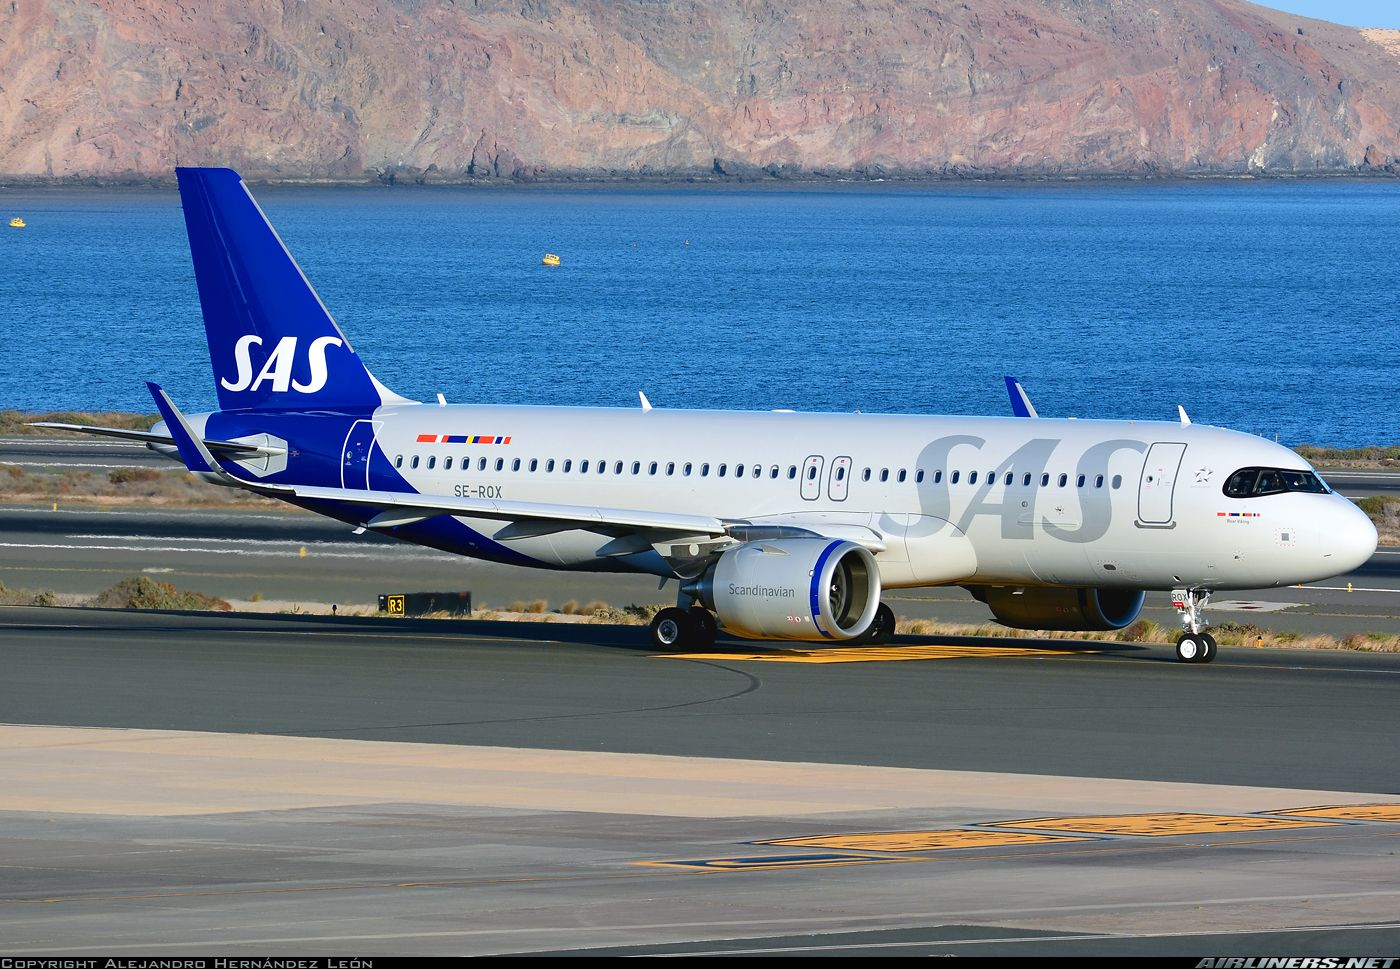 Pin By Mtay On Sas Scandinavian Airlines In 2020 Airbus Scandinavian Airlines System Sas